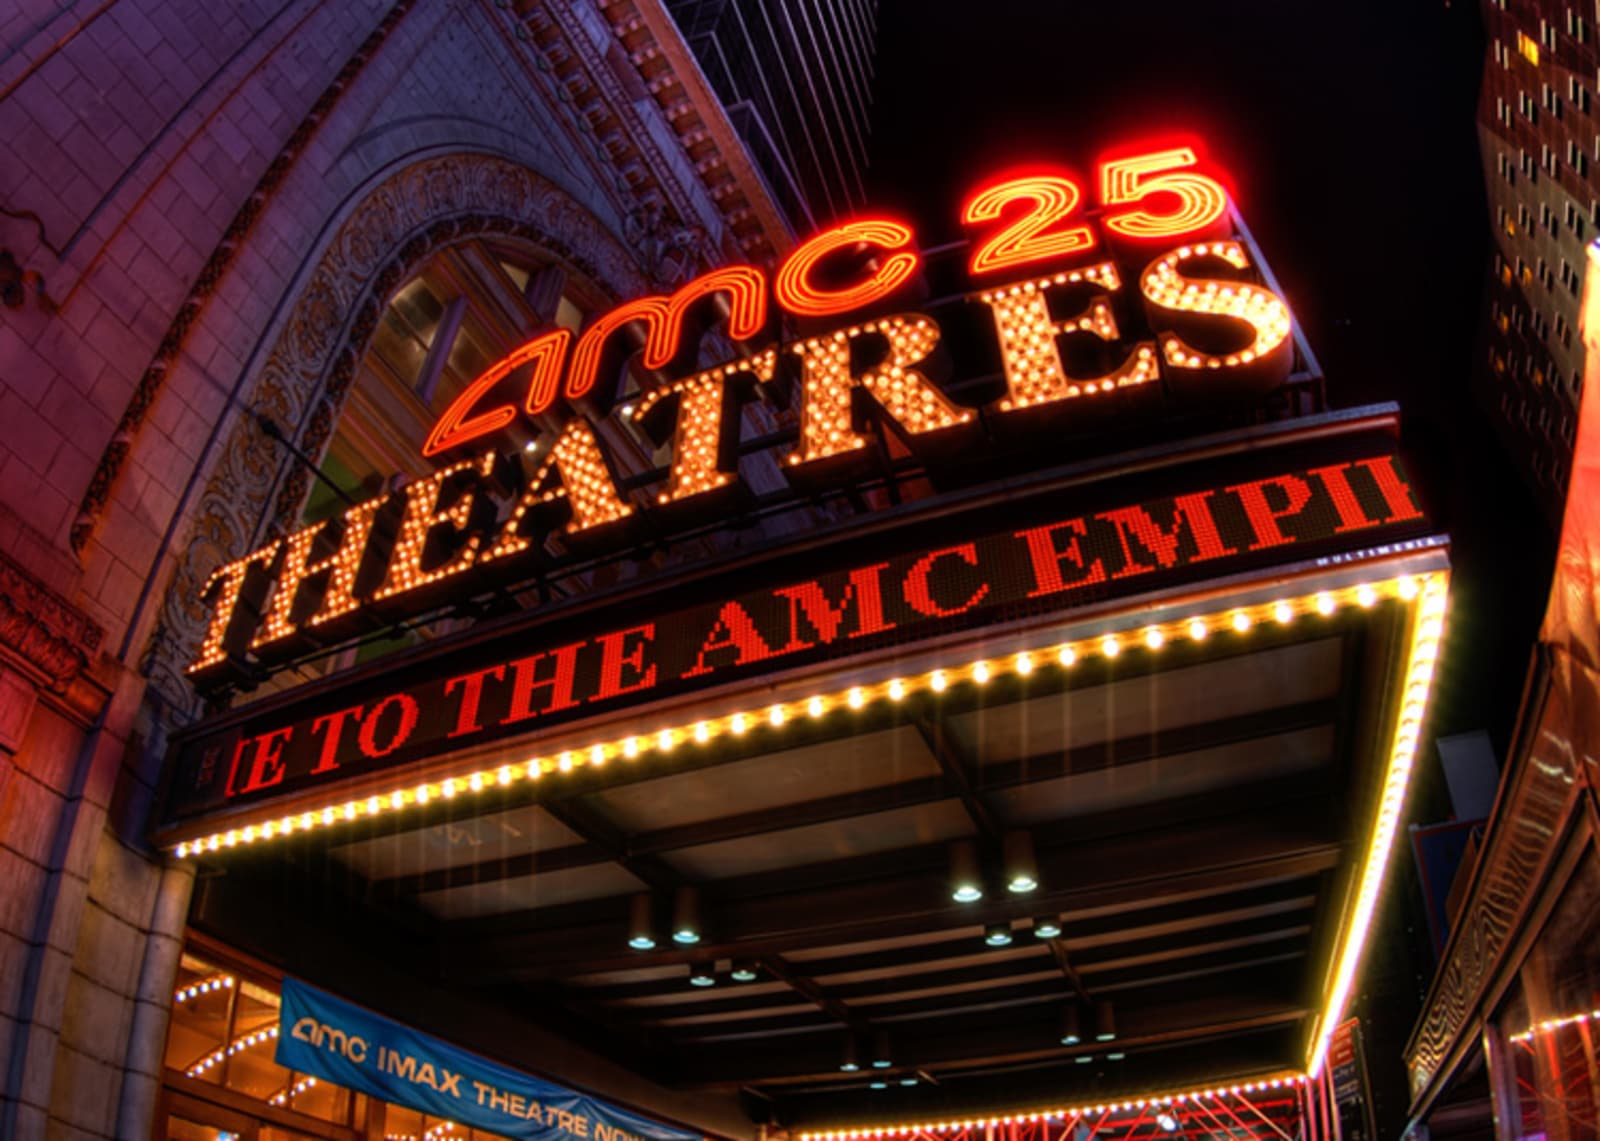 Amc Theaters Shows Signs Of Life On A Strong Movie Slate The